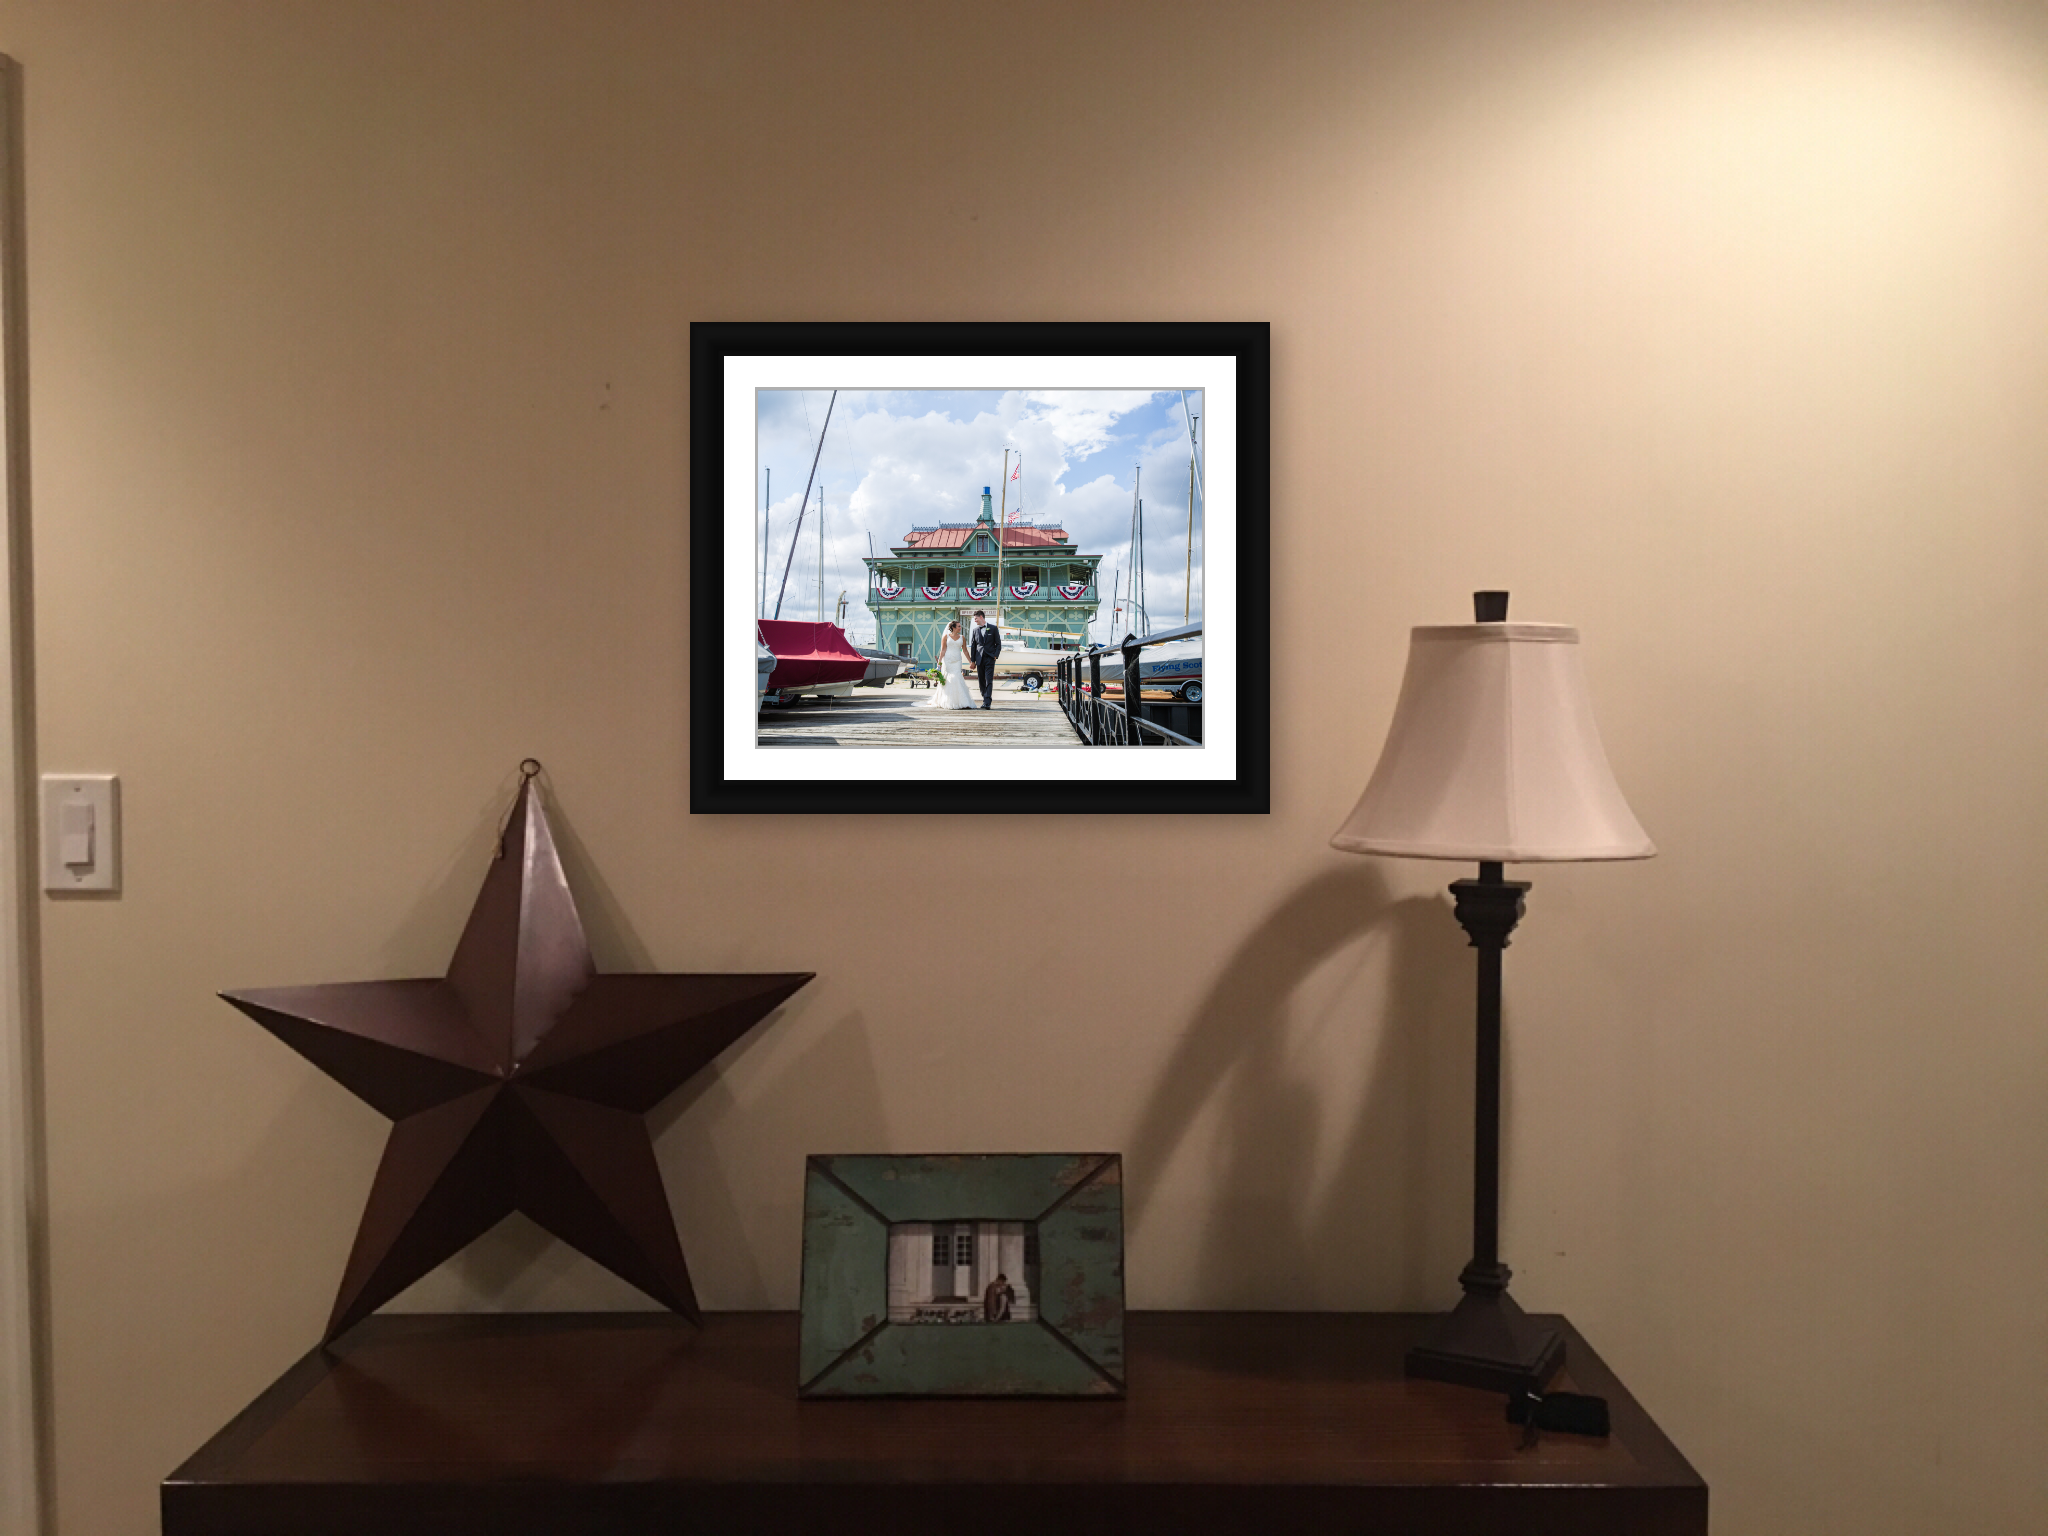 custom framed wedding photo added into a family room for them to see every single day